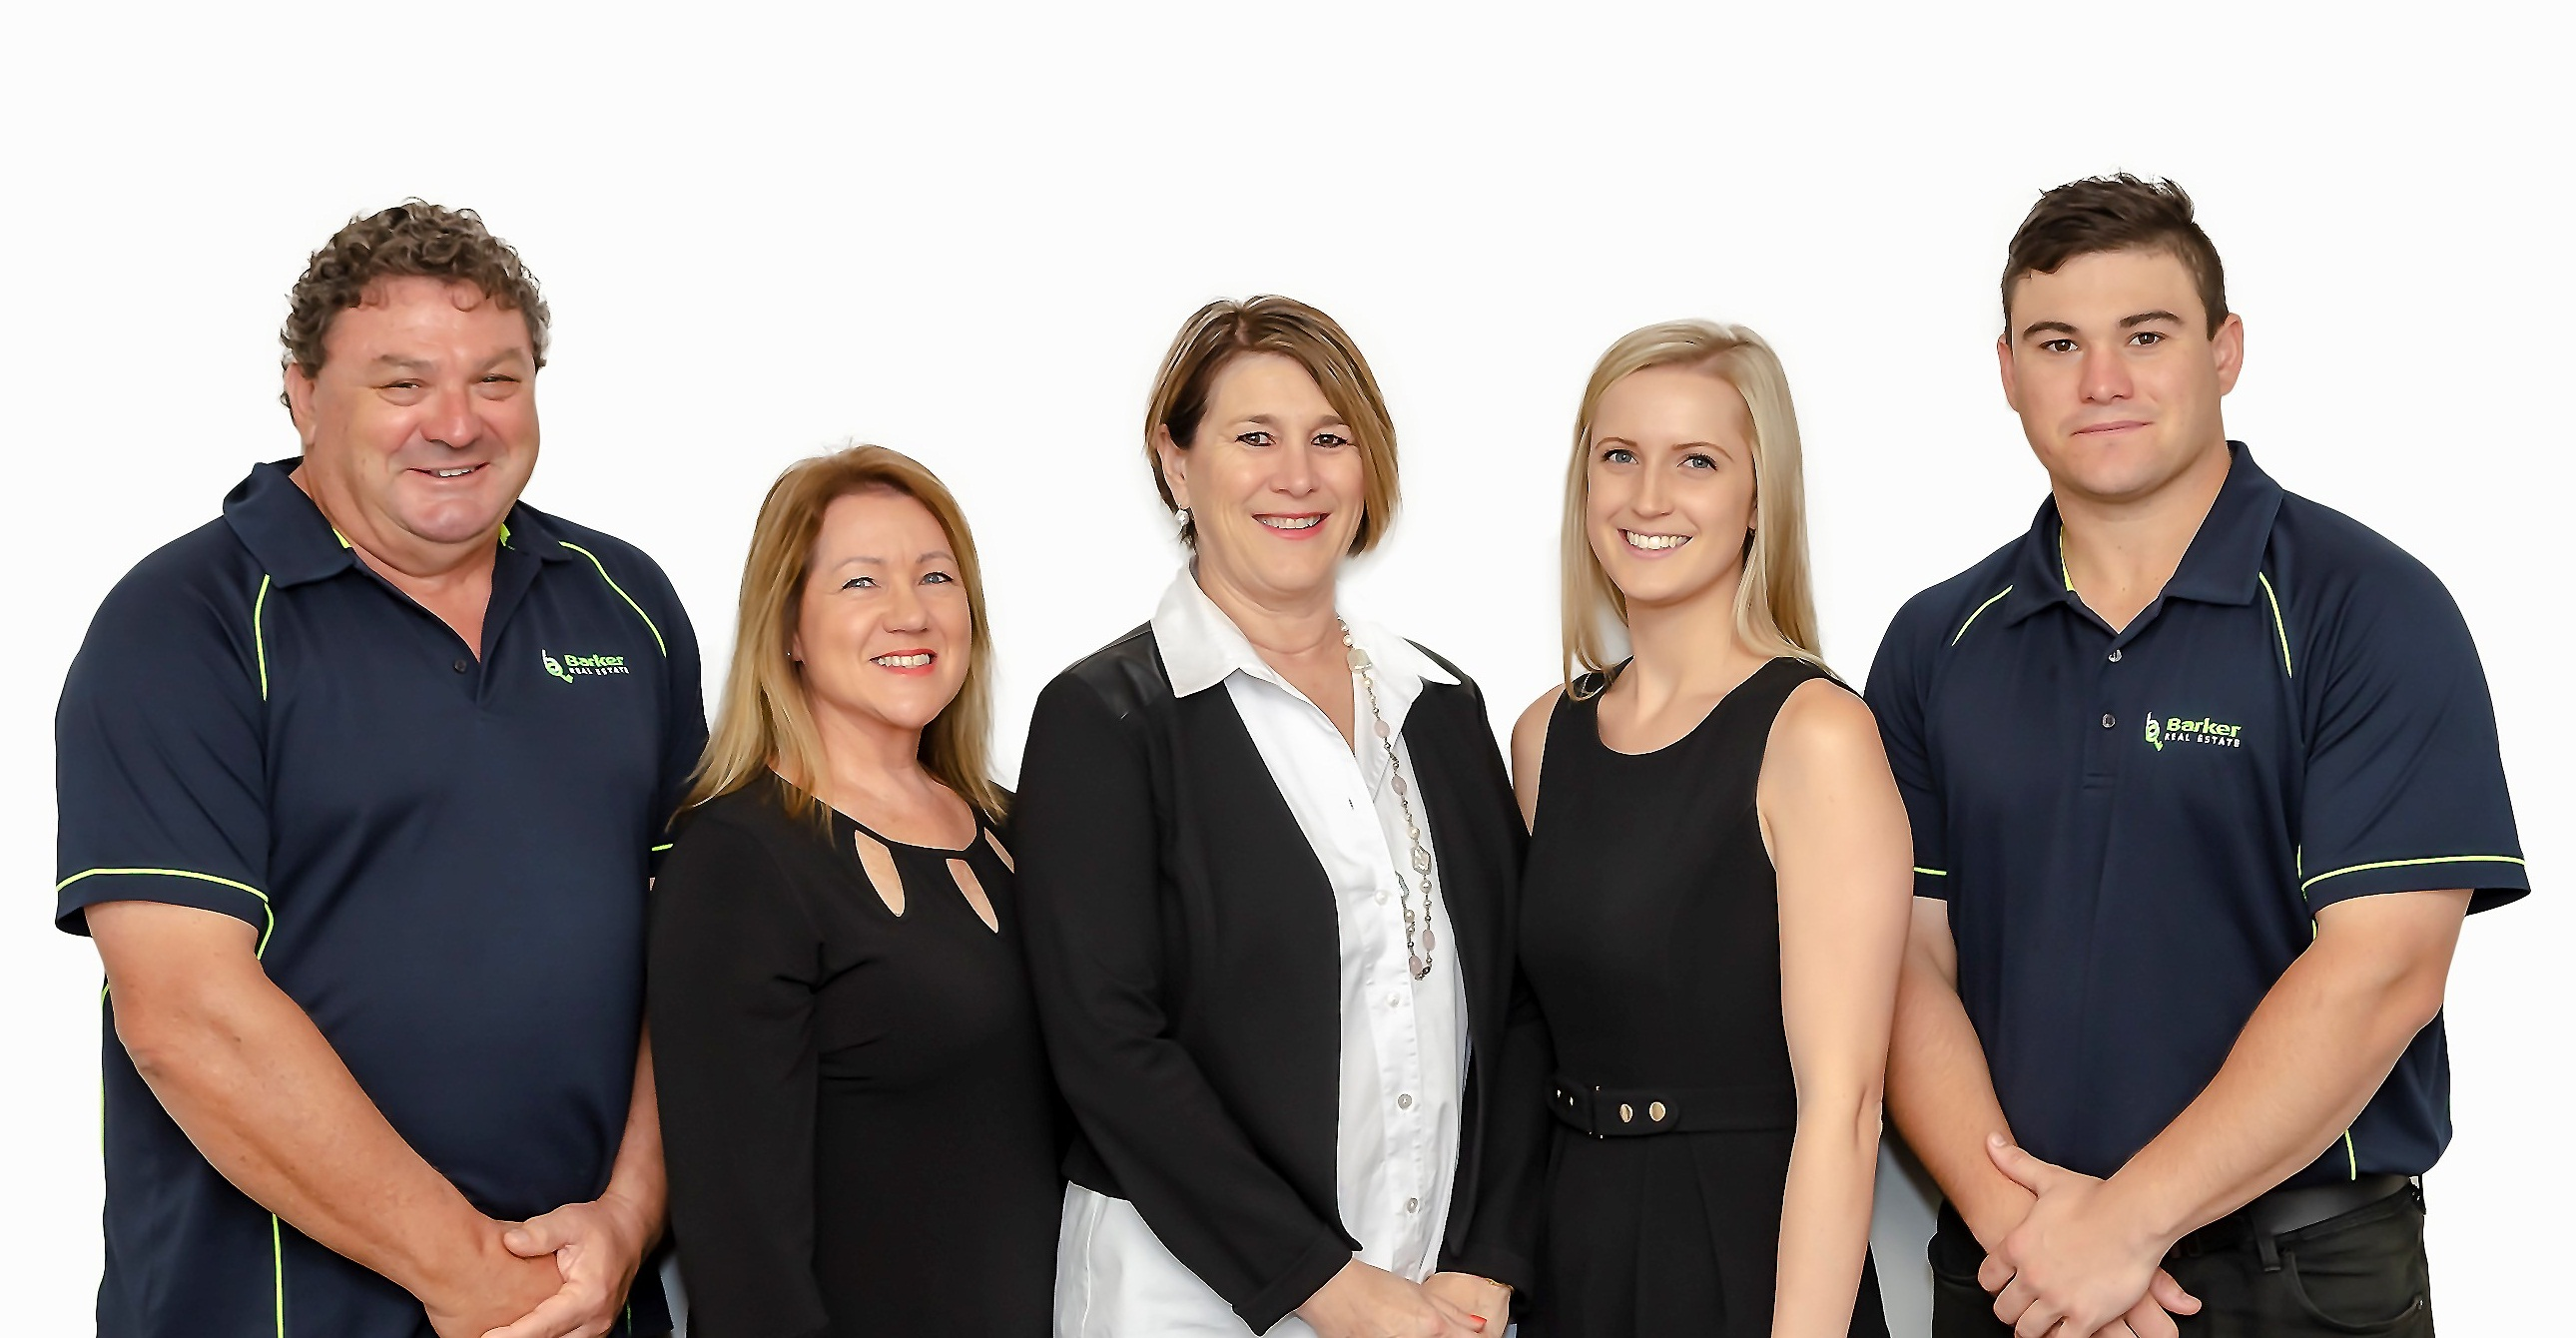 barker real estate agent gawler